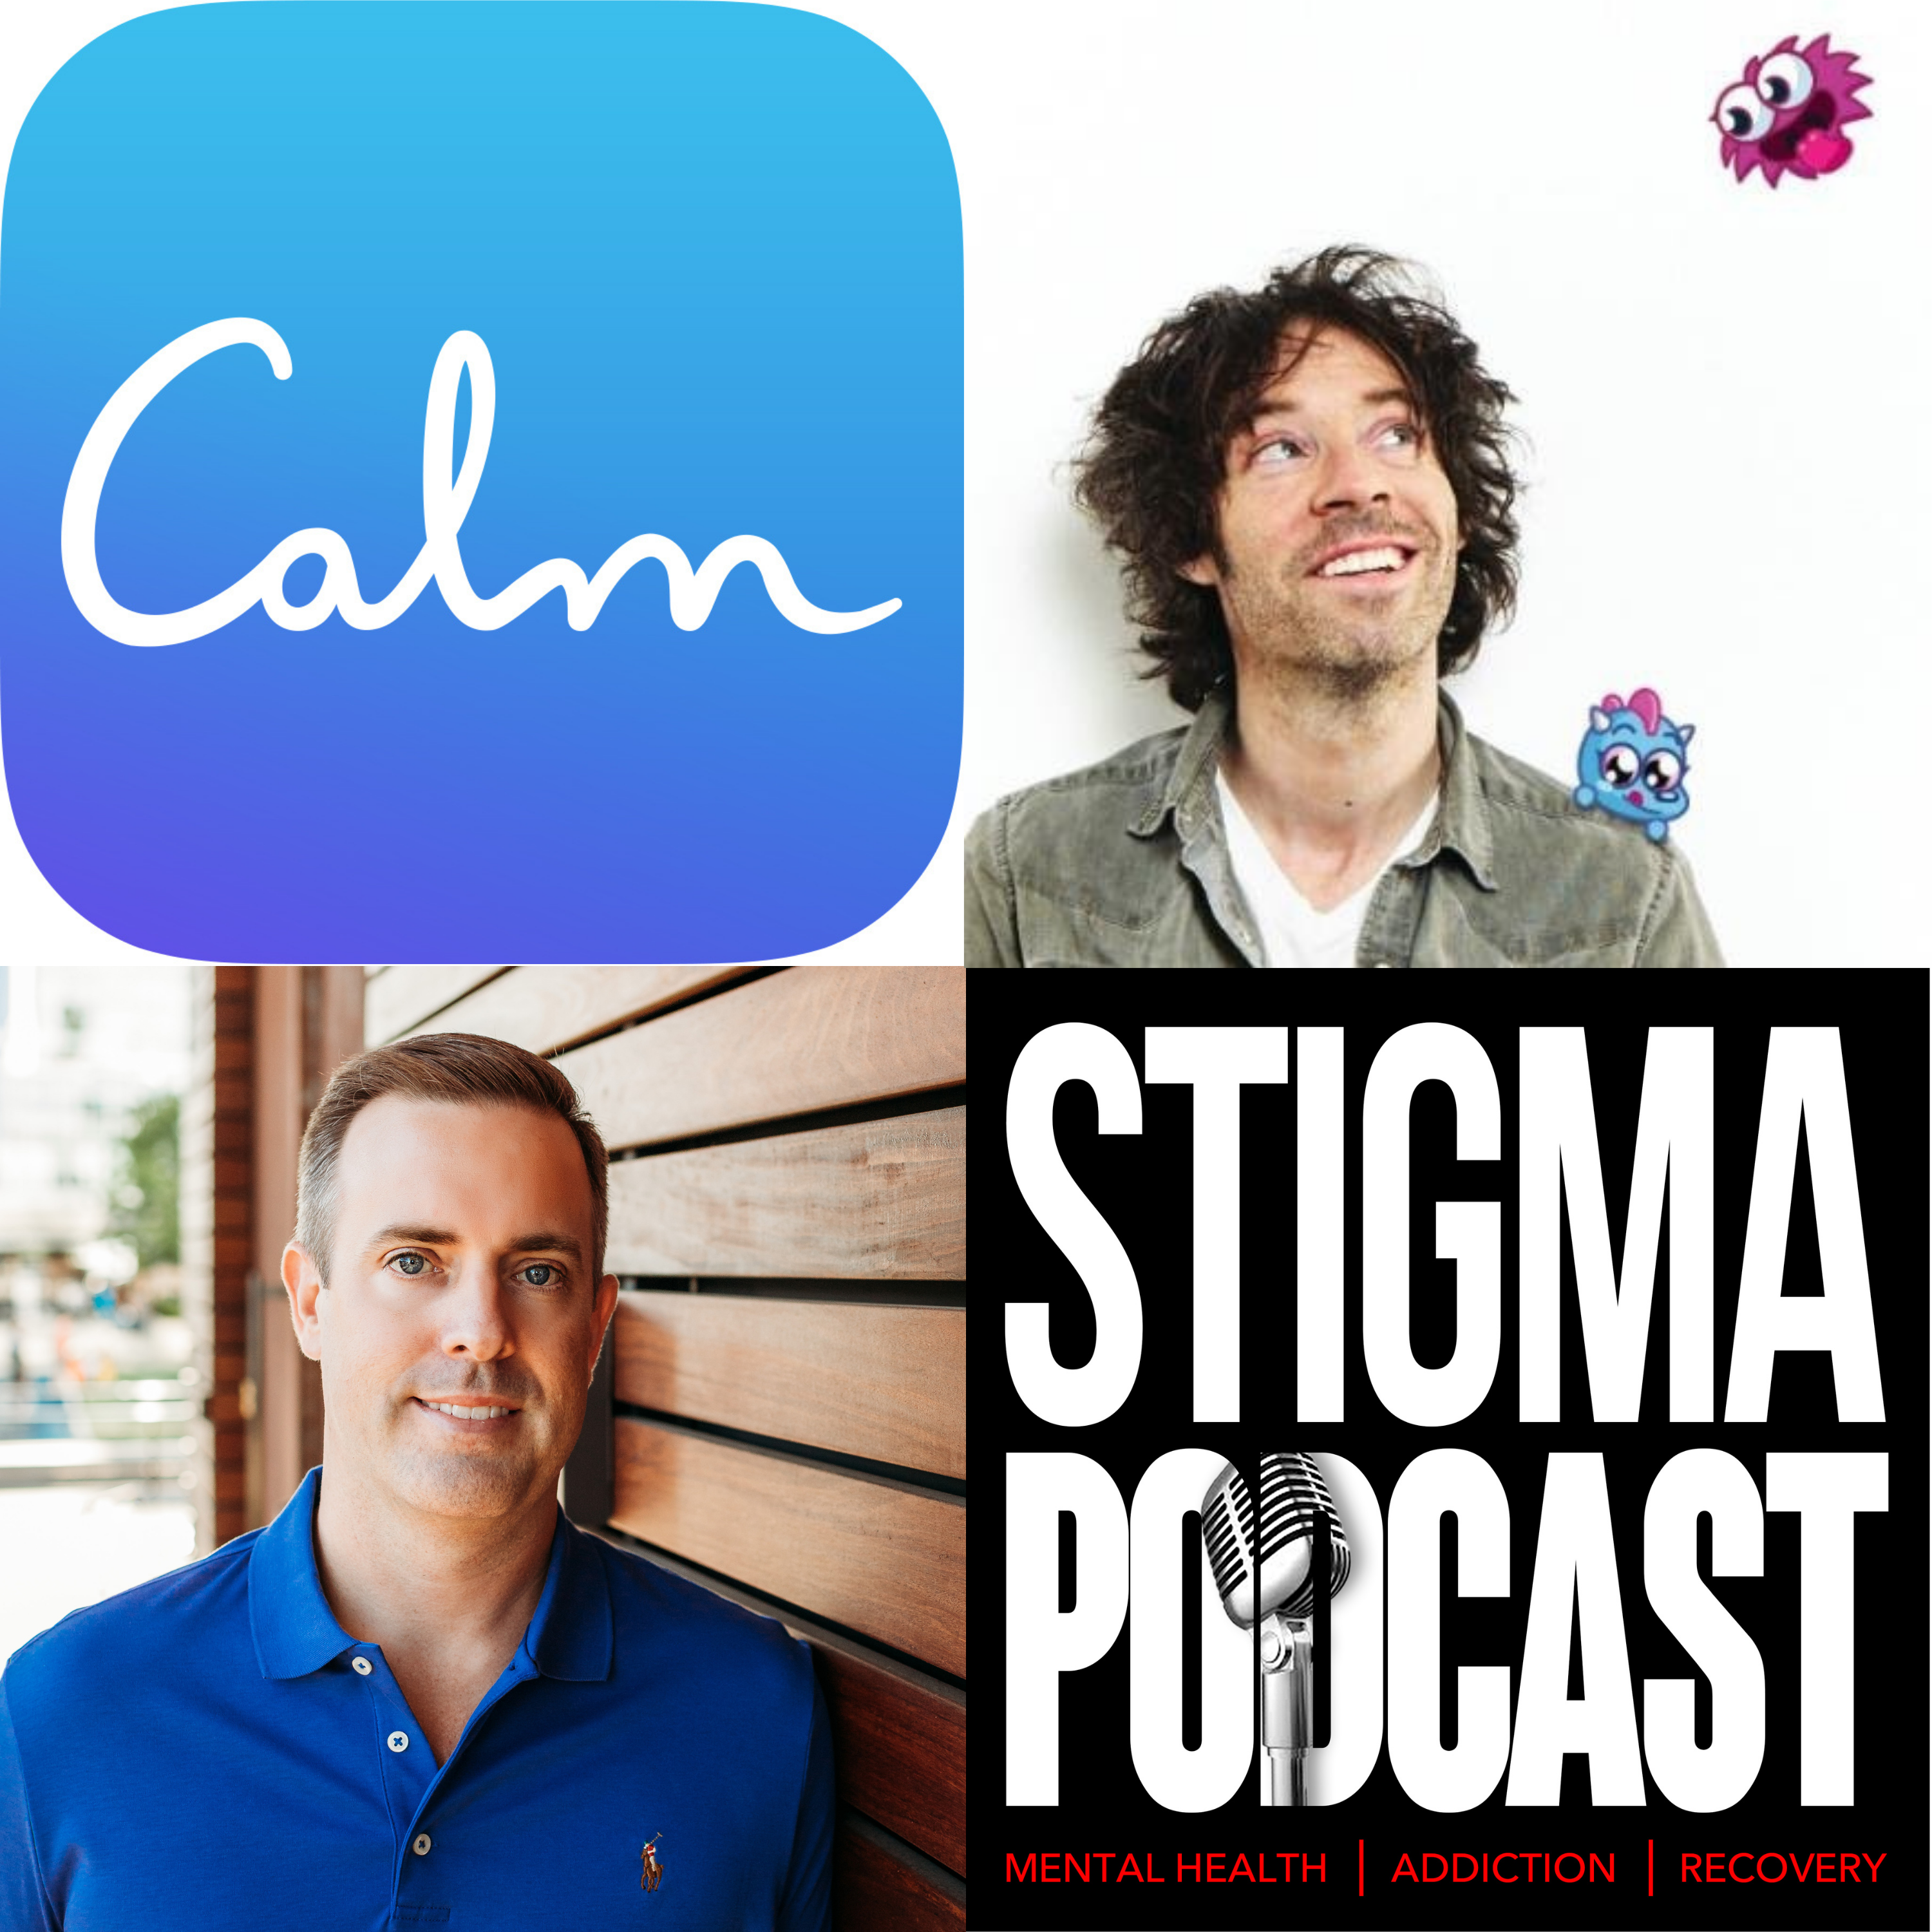 #71 - Calm Co-Founder, Michael Acton Smith a Pioneer in Mental Health and Wellness